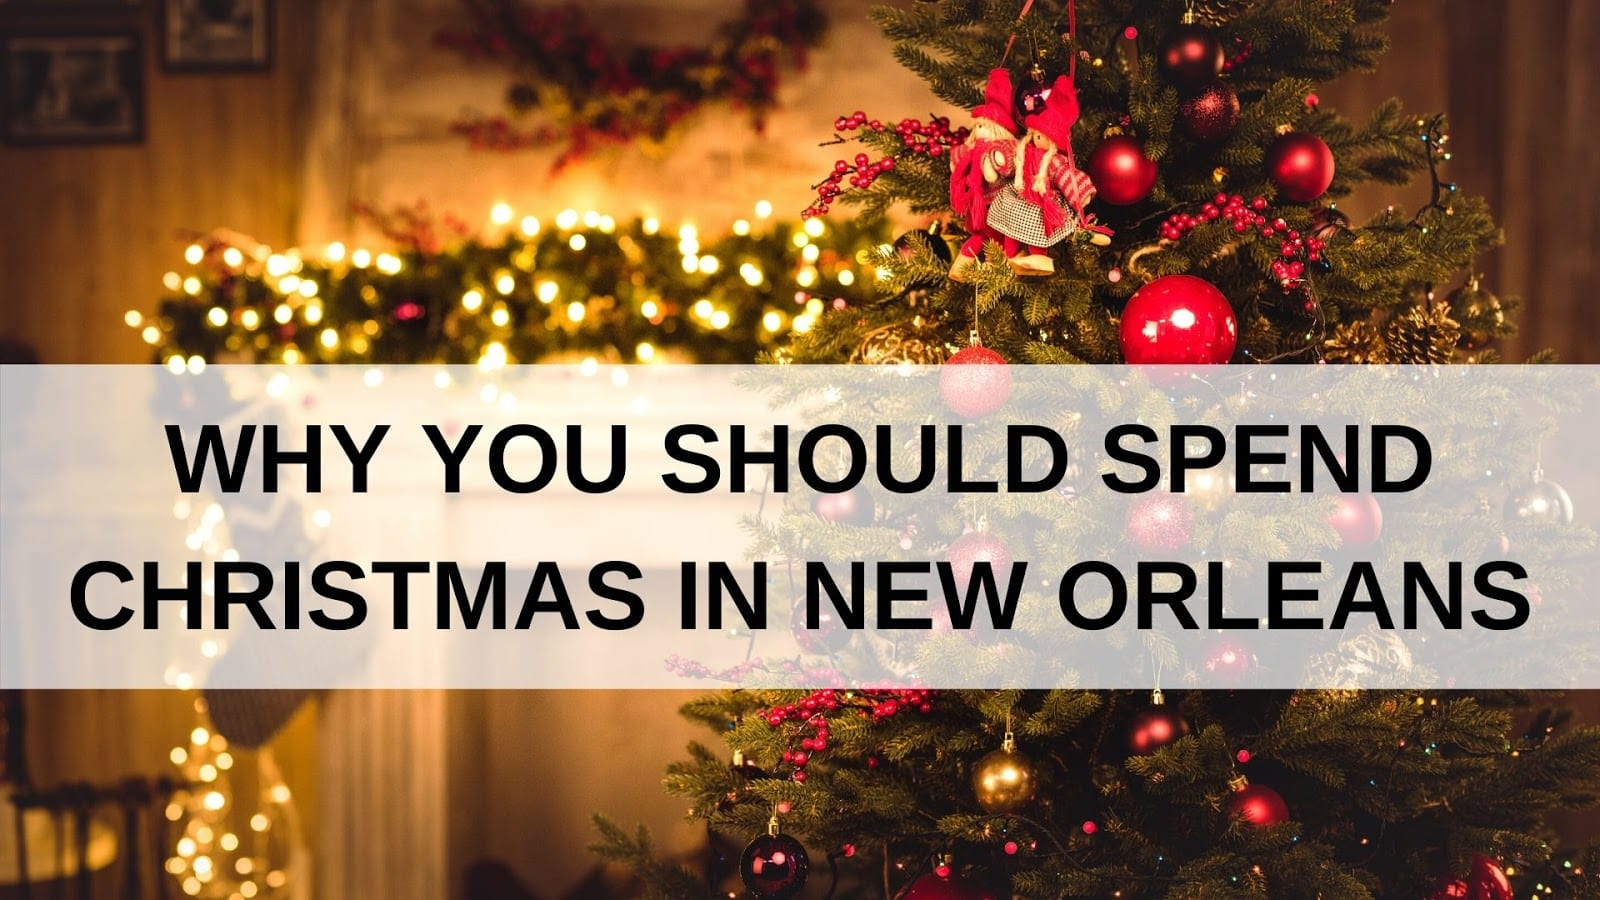 Why You Should Spend Christmas in New Orleans